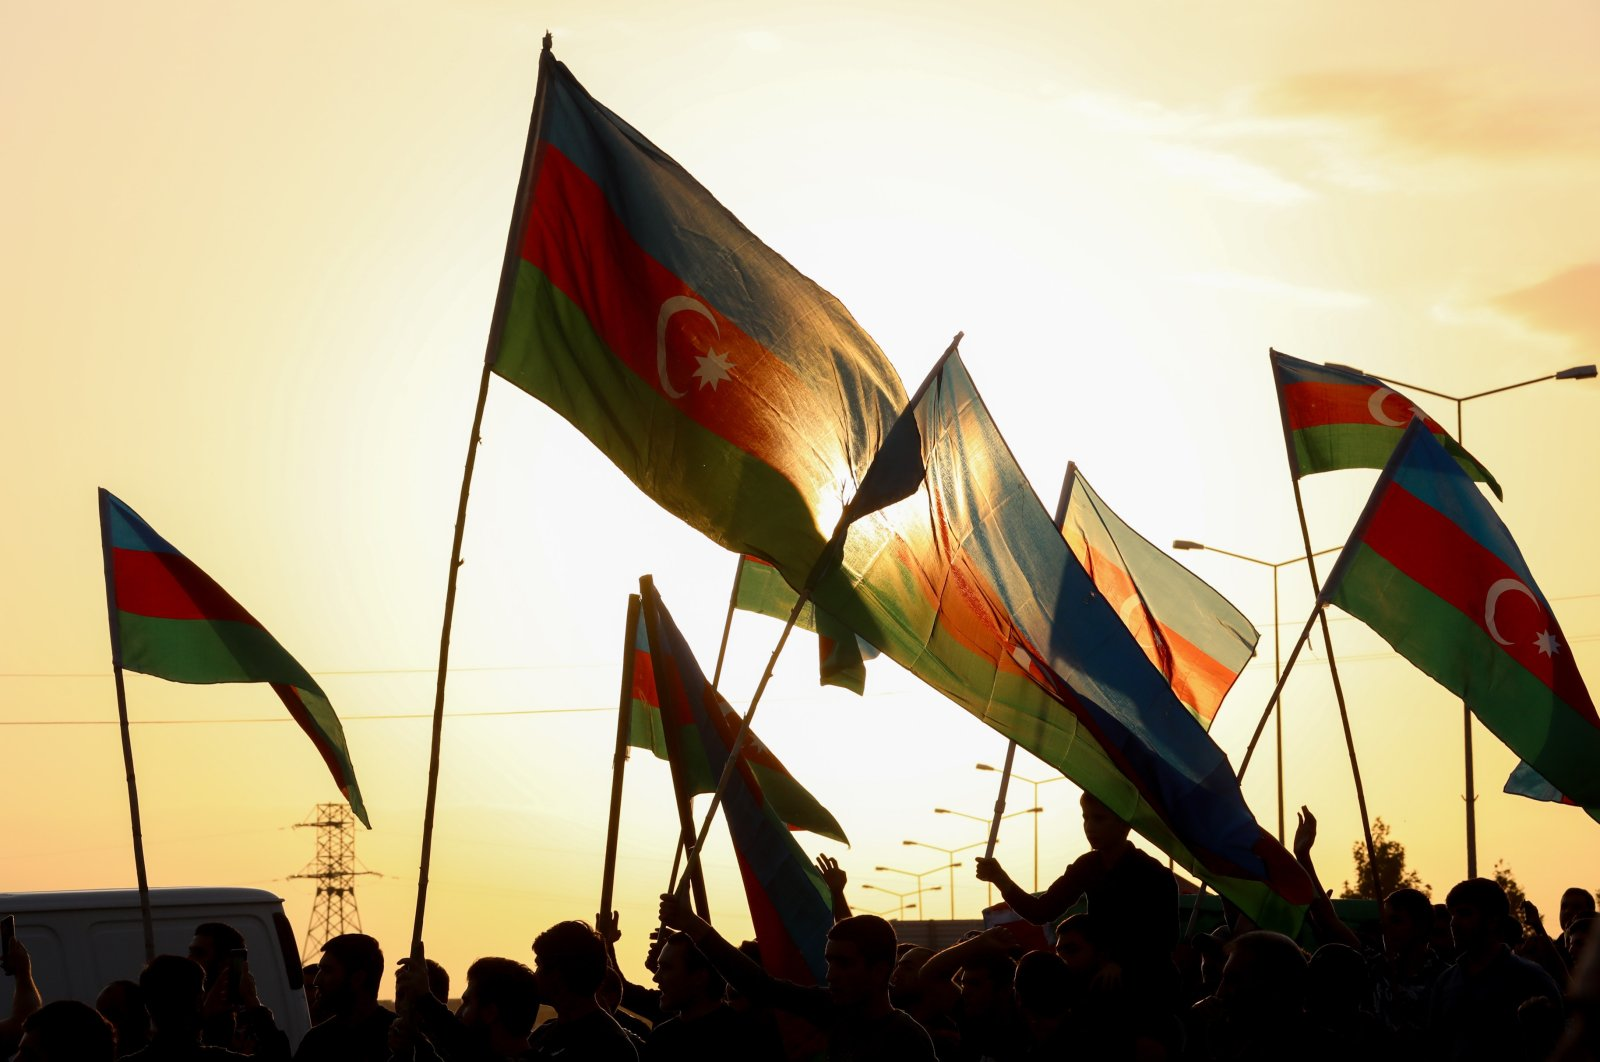 People wave flags at the funeral of a member of Azerbaijani military, who was killed by Armenian shelling in the Tartar border district of Azerbaijan, Sept. 29, 2020. (Photo by Getty Images)